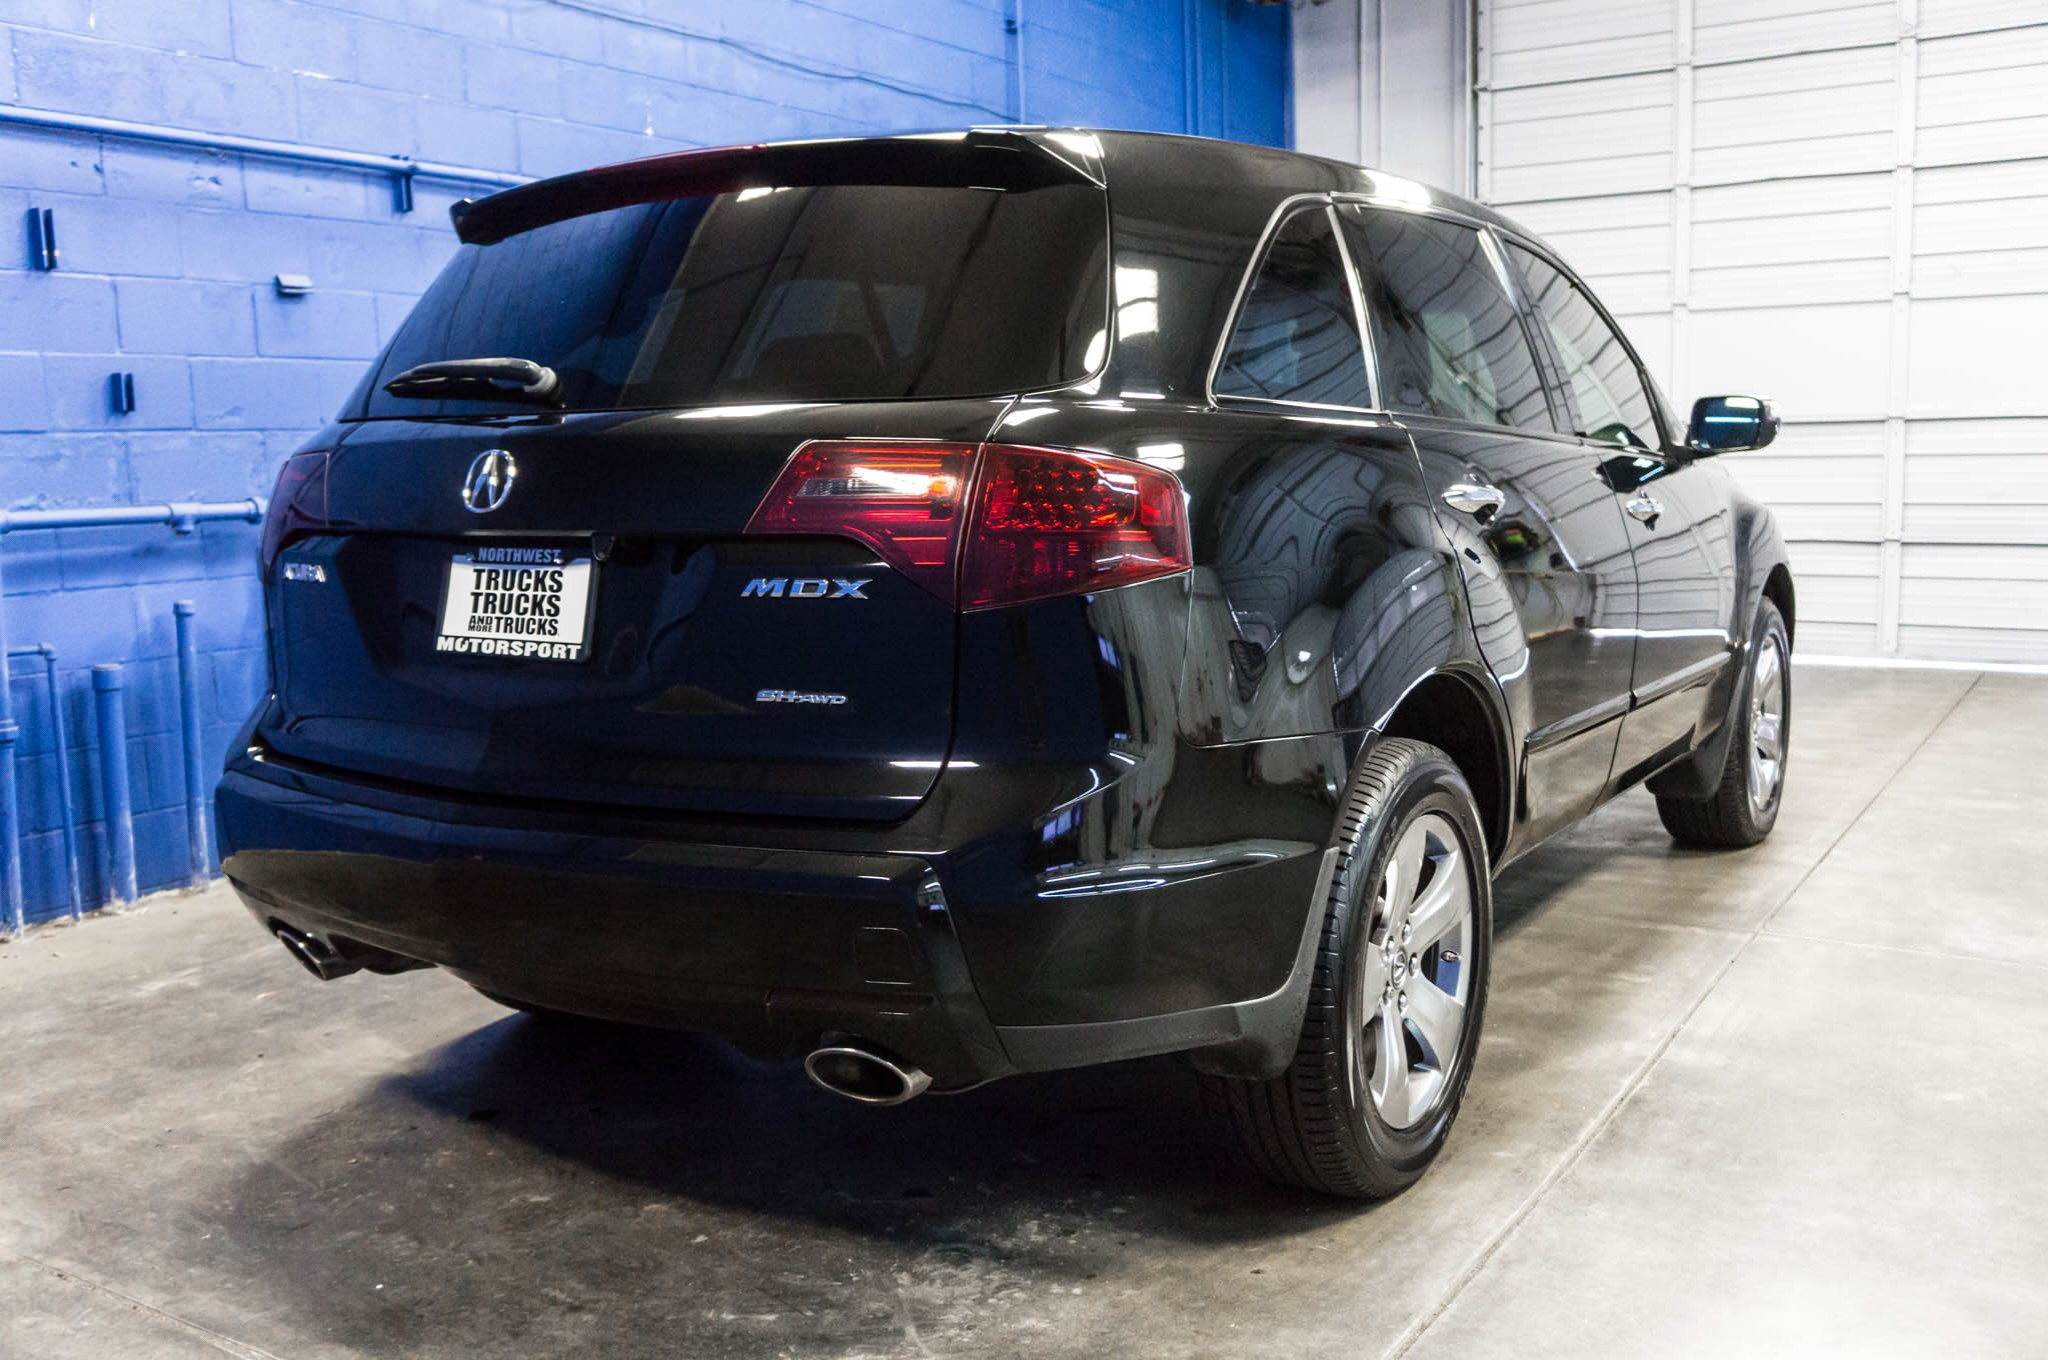 information acura cargurus for of sale pictures bakersfield used mdx tsx specs amp beautiful ca